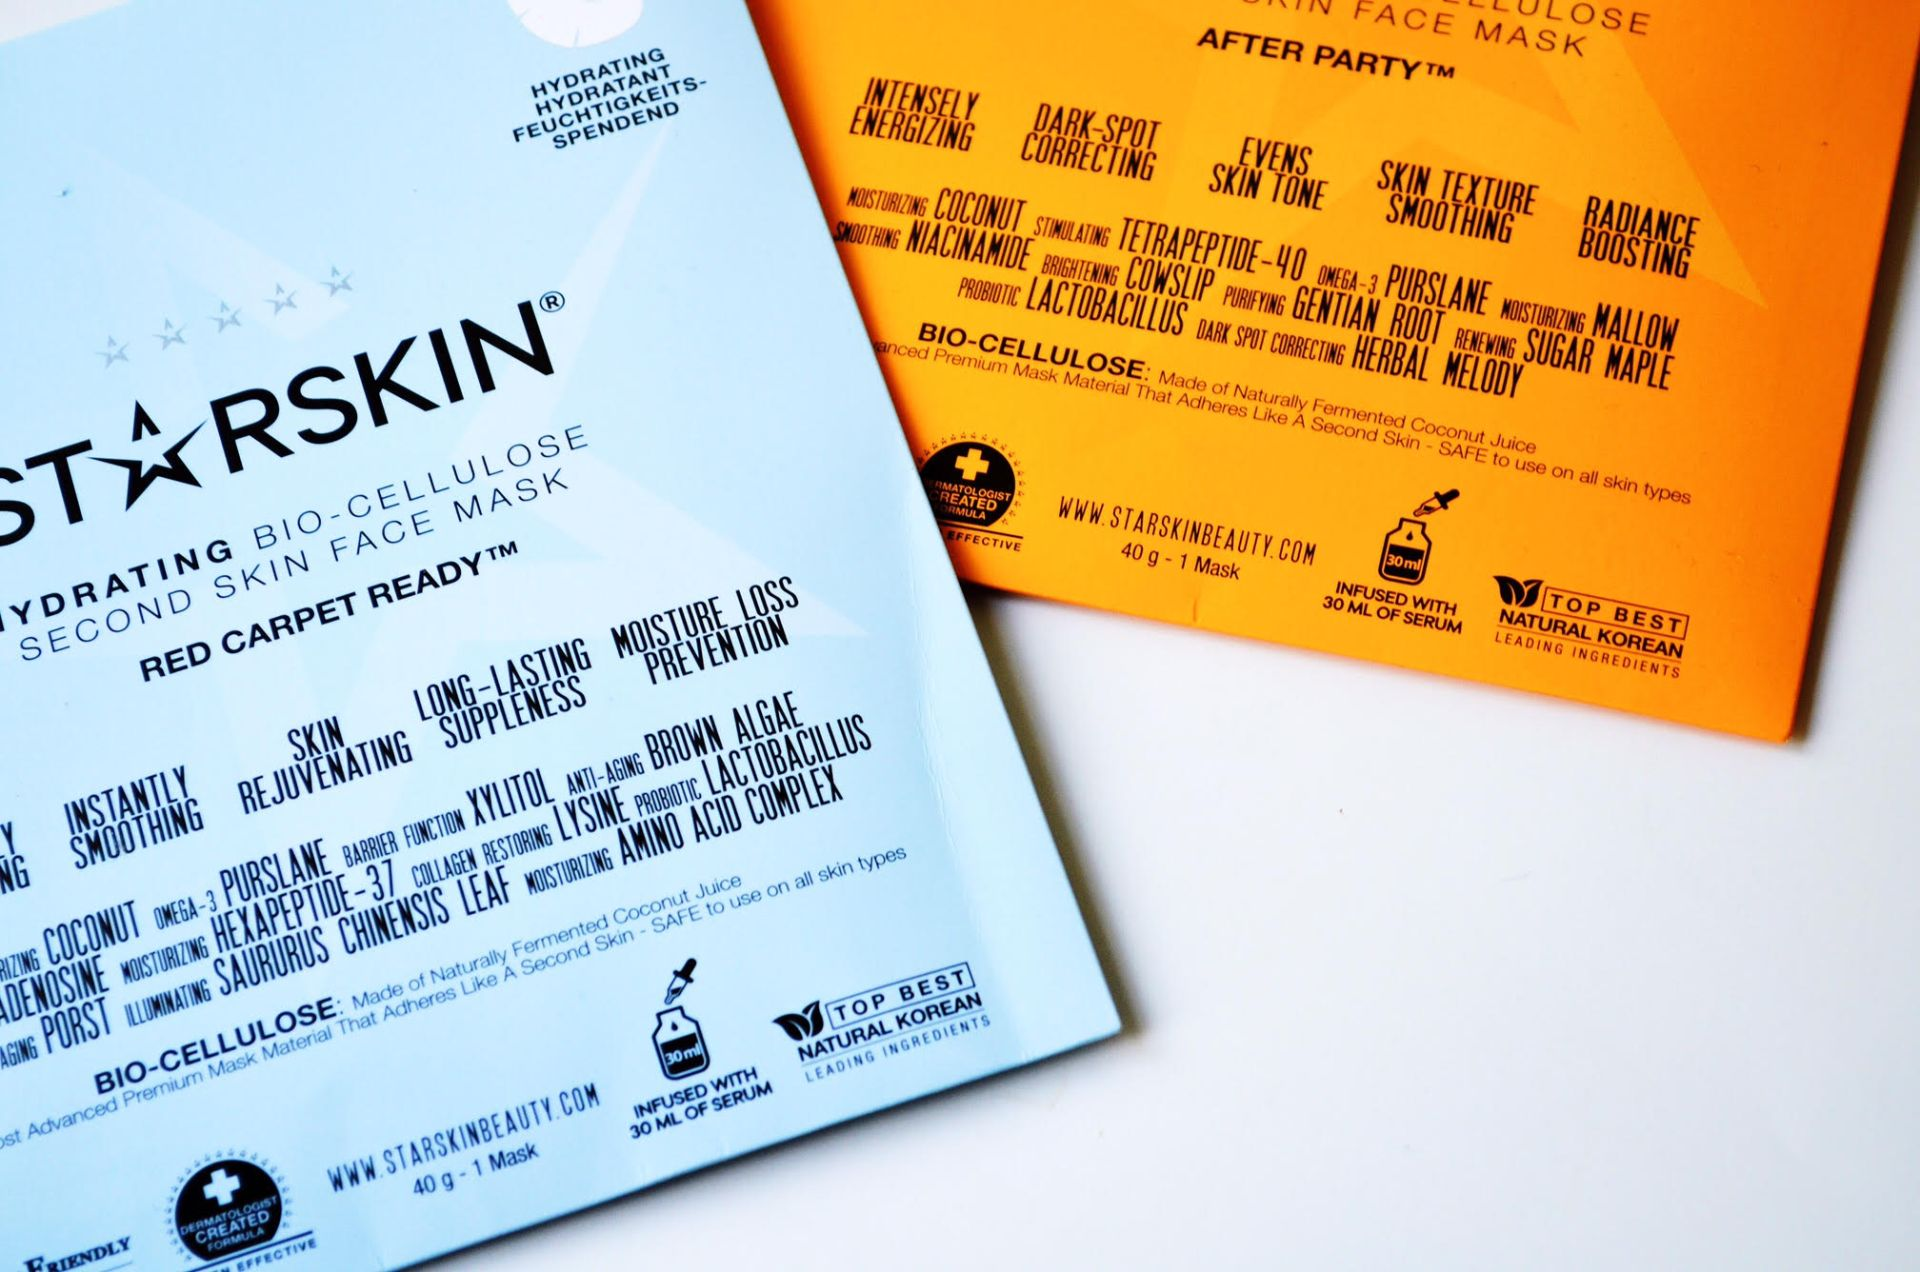 blush-london-reviews-starskin-sheet-mask